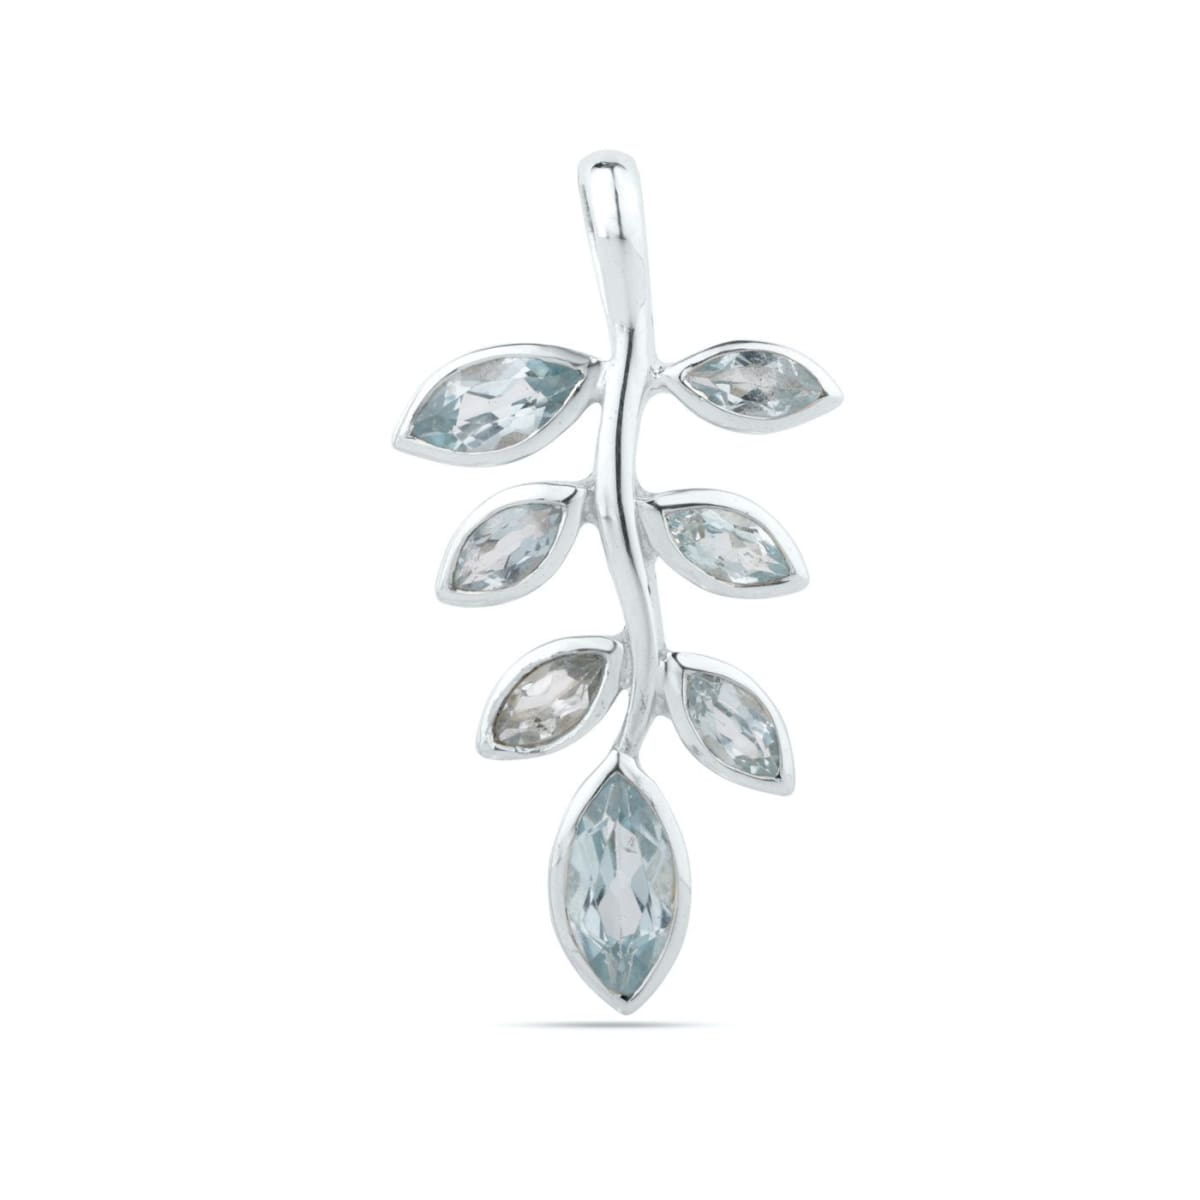 Blue Topaz Leaf Pendant in Sterling Silver Necklace For Woman